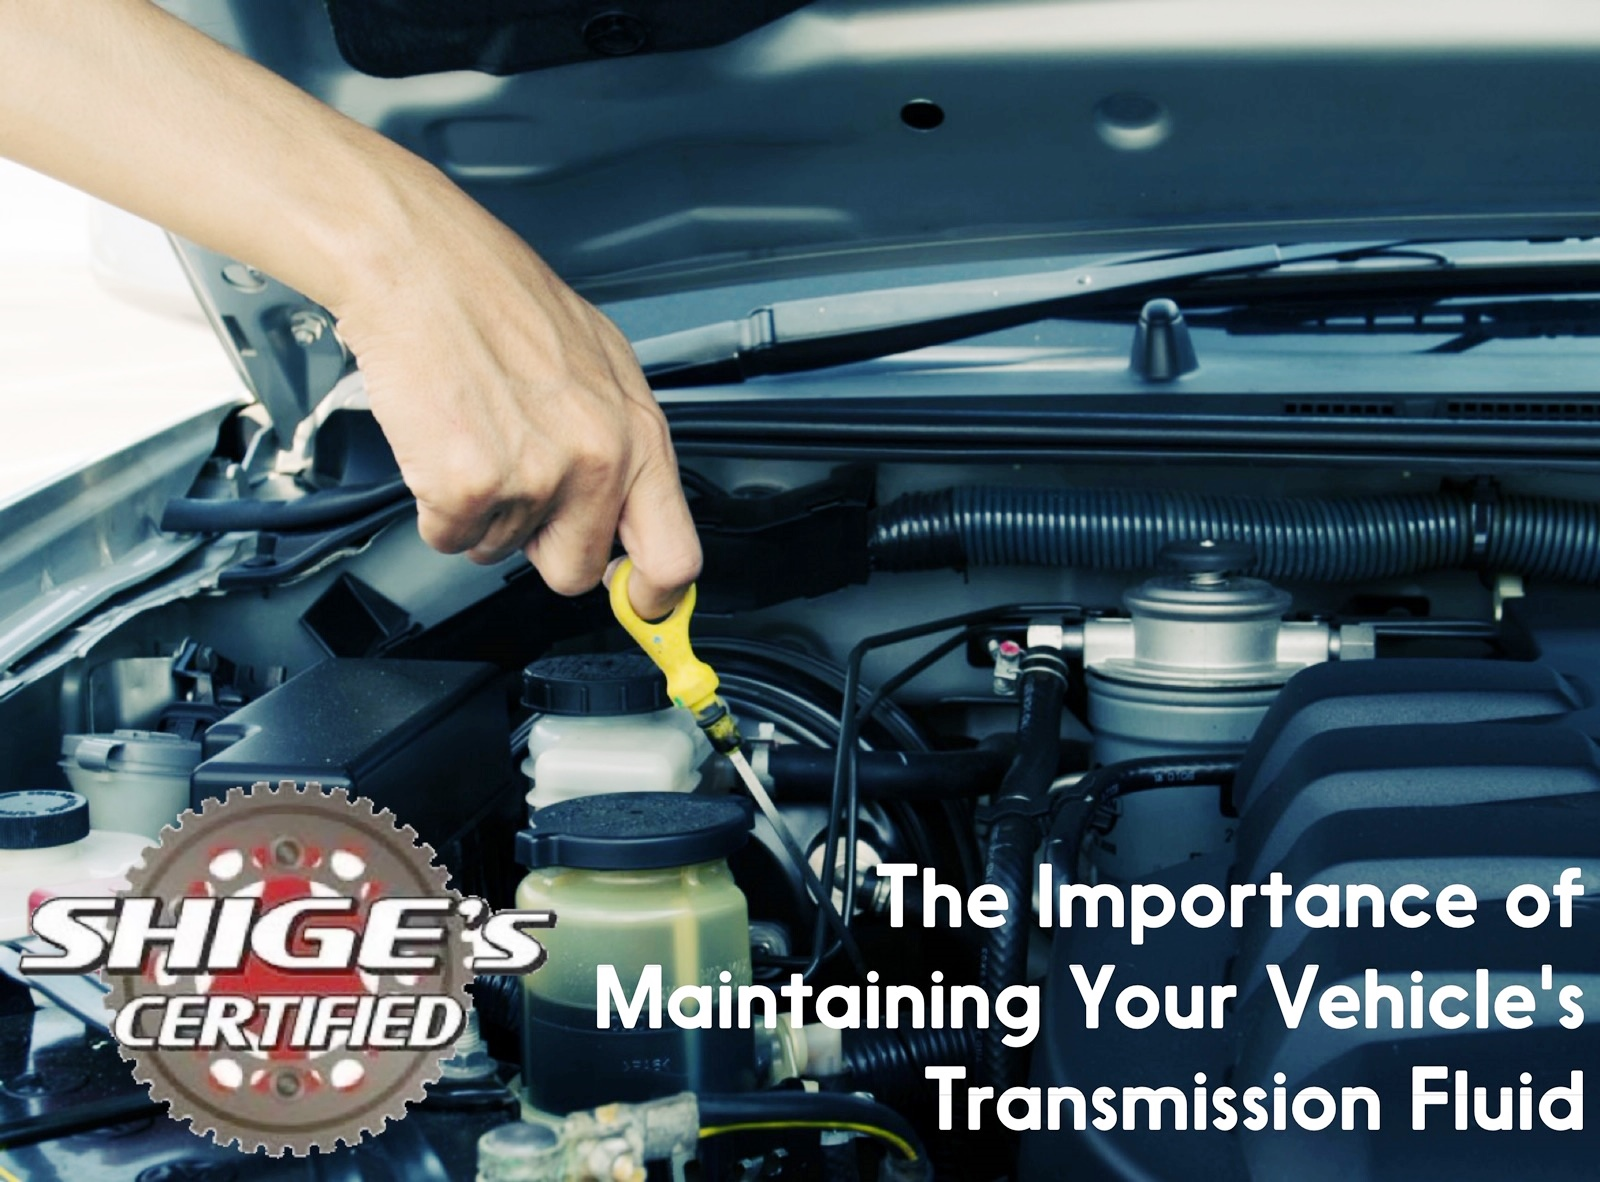 The Importance of Maintaining Your Vehicle's Transmission Fluid